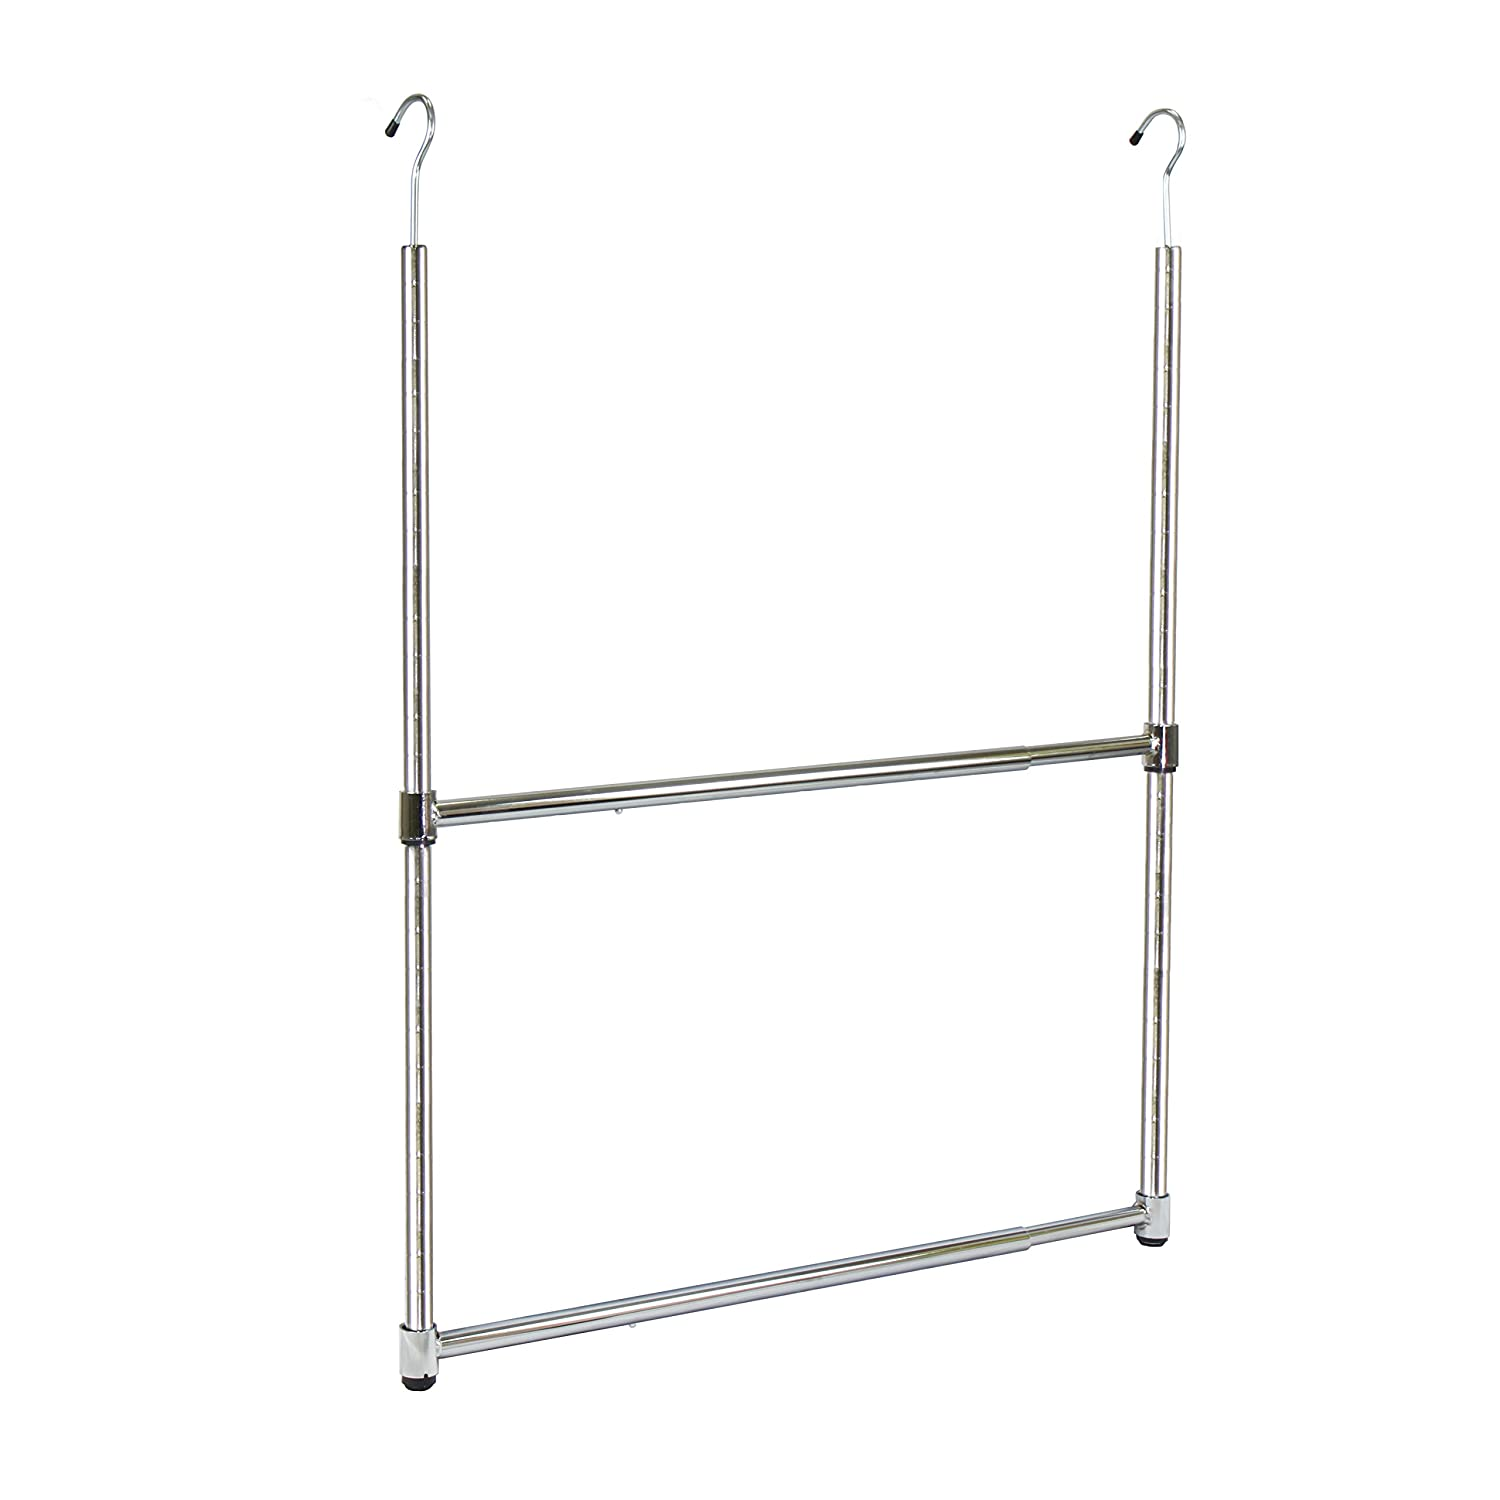 Oceanstar 2-Tier Portable Adjustable Closet Hanger Rod, Chrome